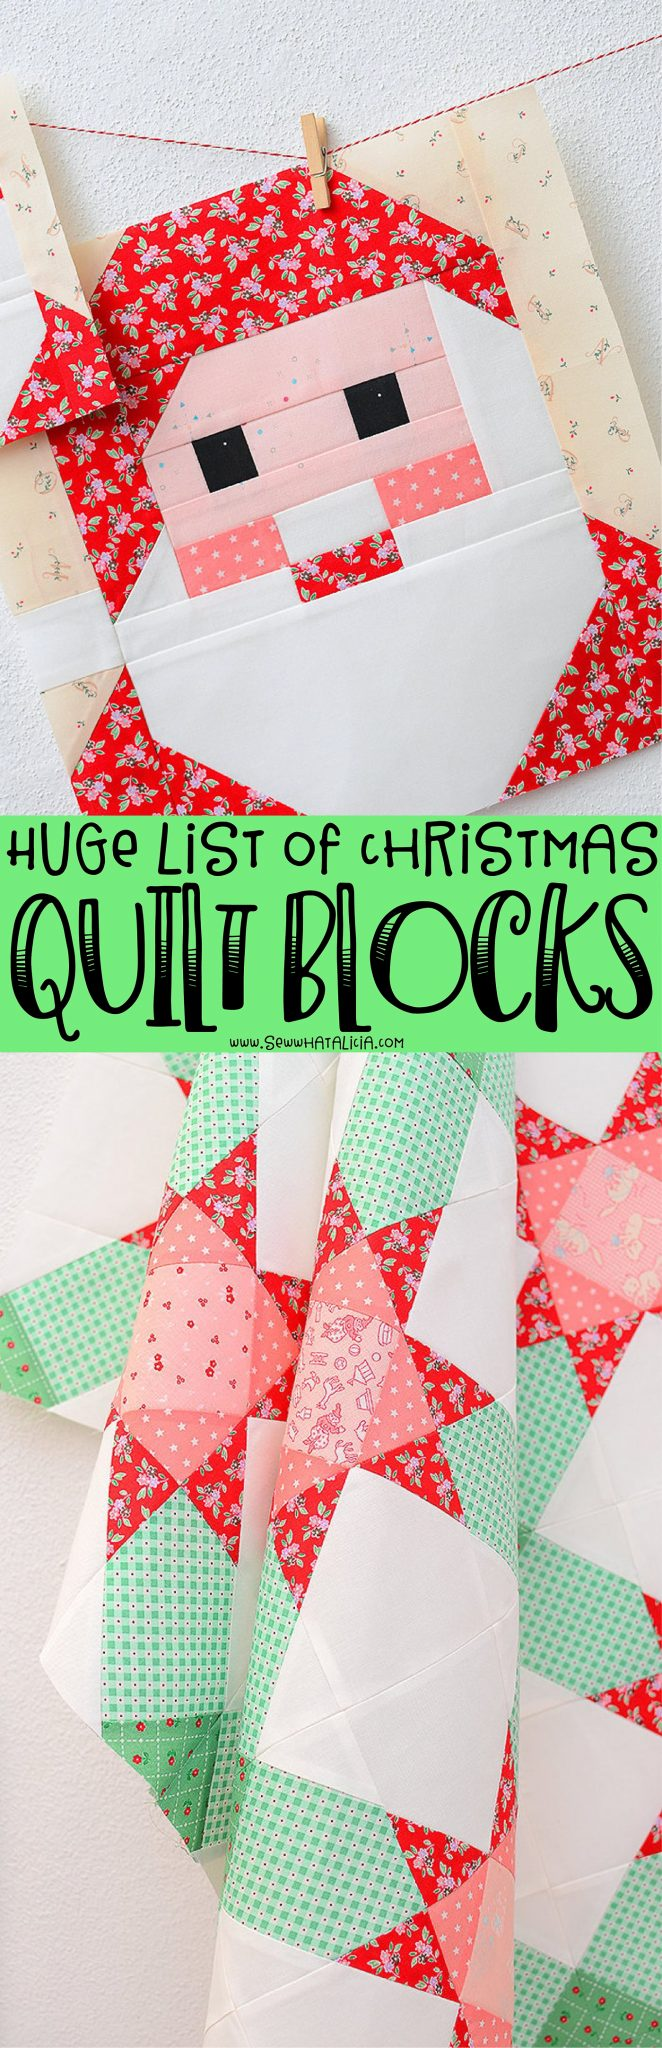 santa claus quilt block and green and red and white quilt with text overlay reading huge list of christmas quilt blocks